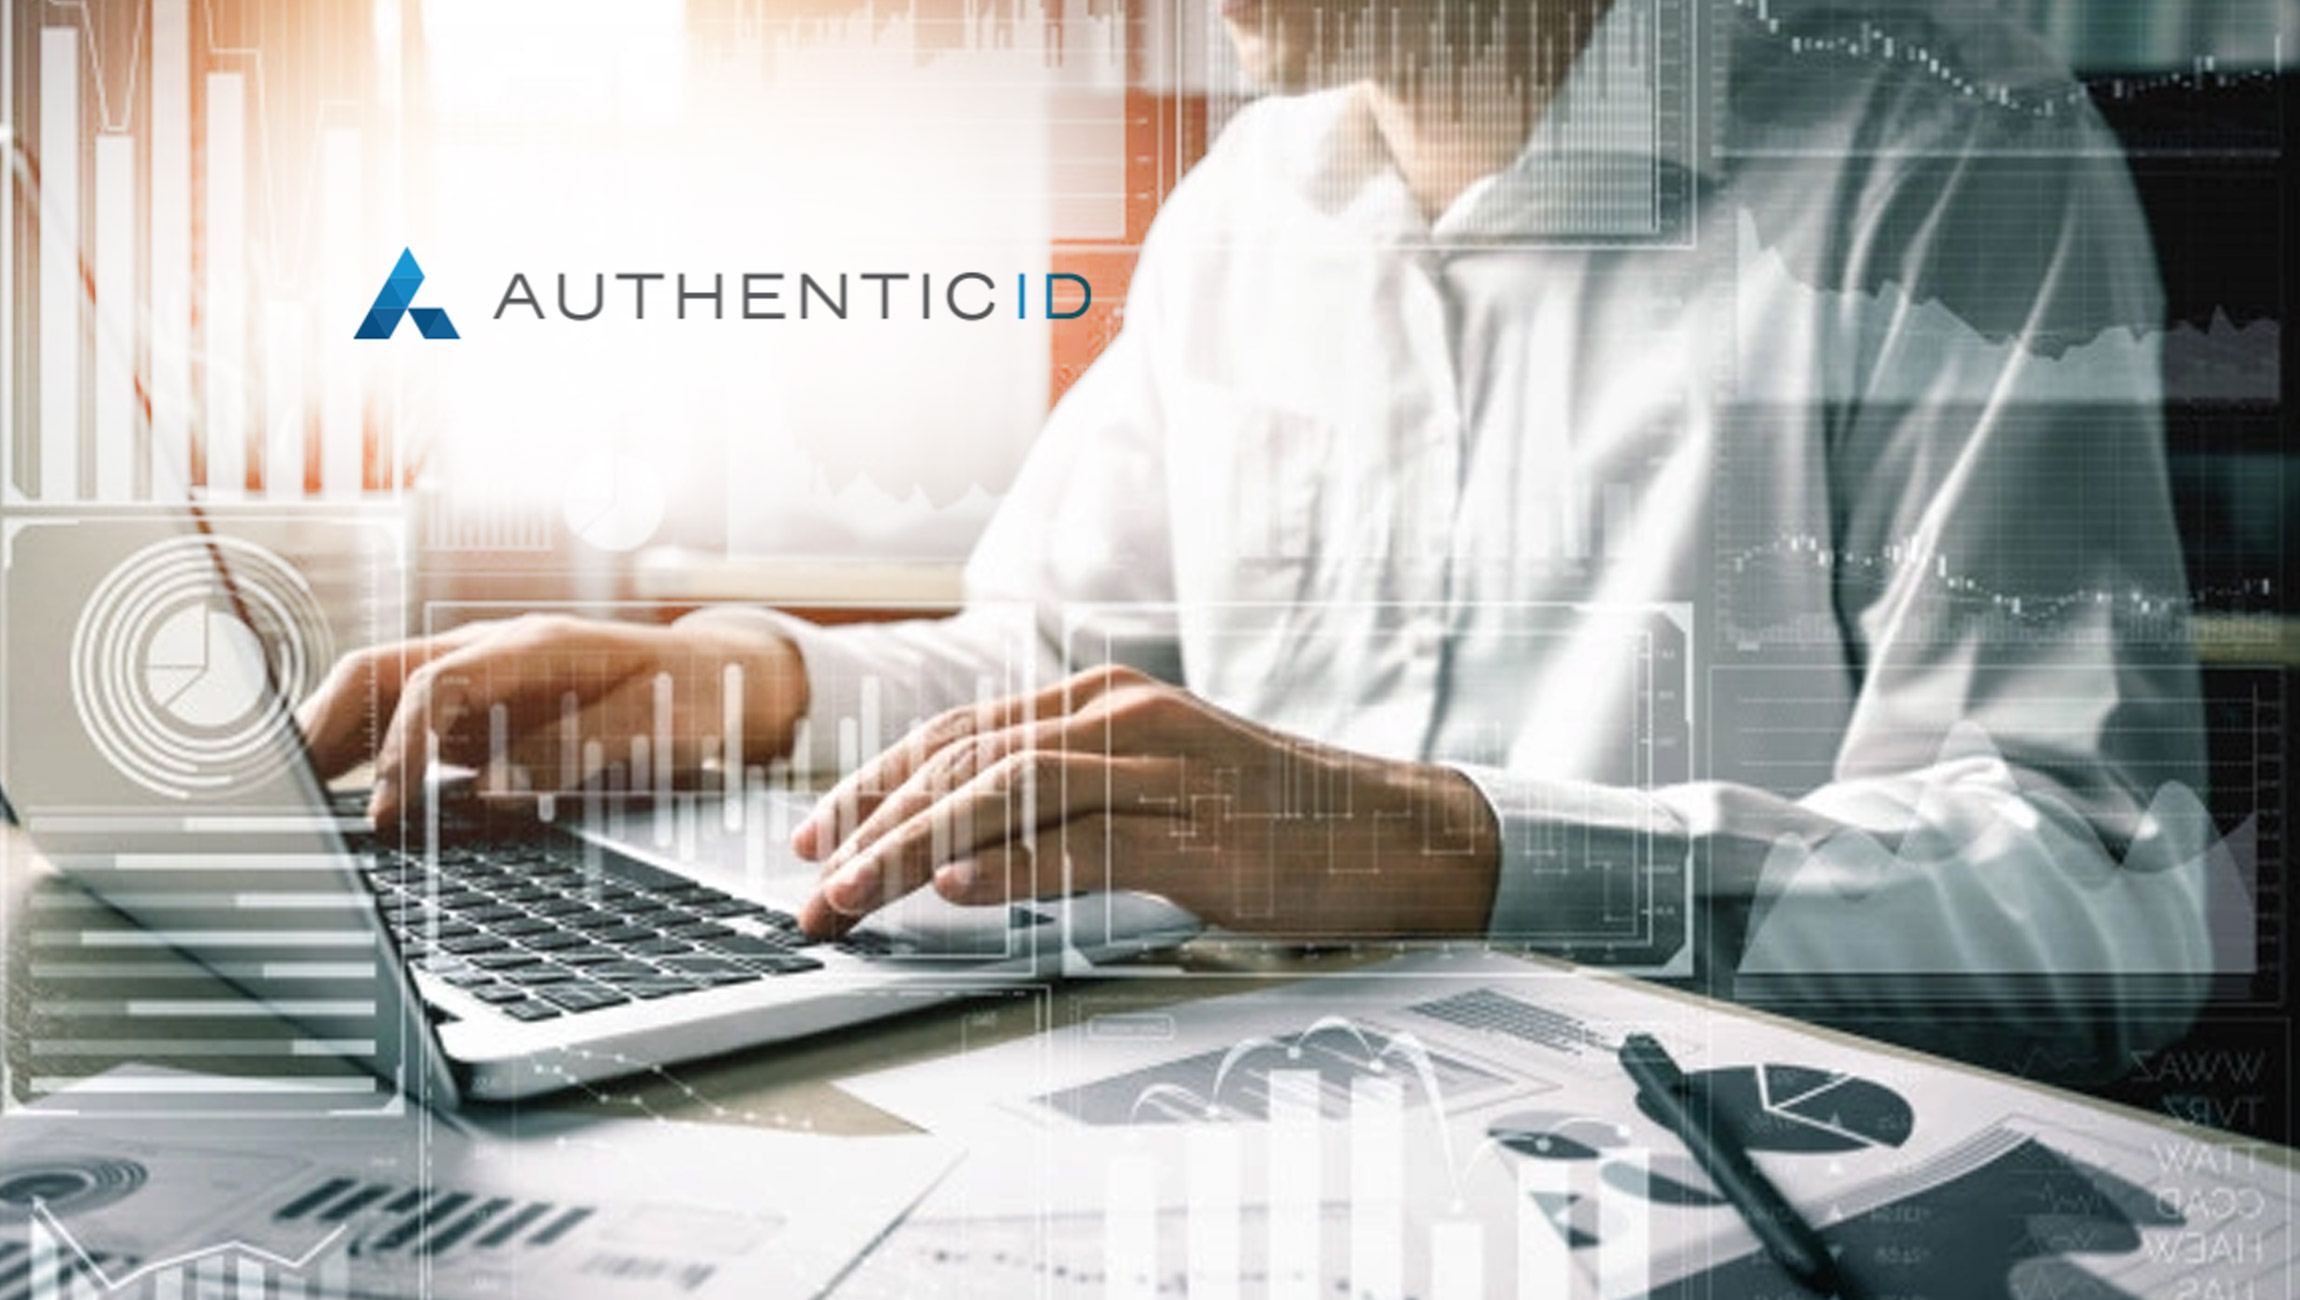 AuthenticID Announces $100 Million Minority Growth Investment Led by Long Ridge